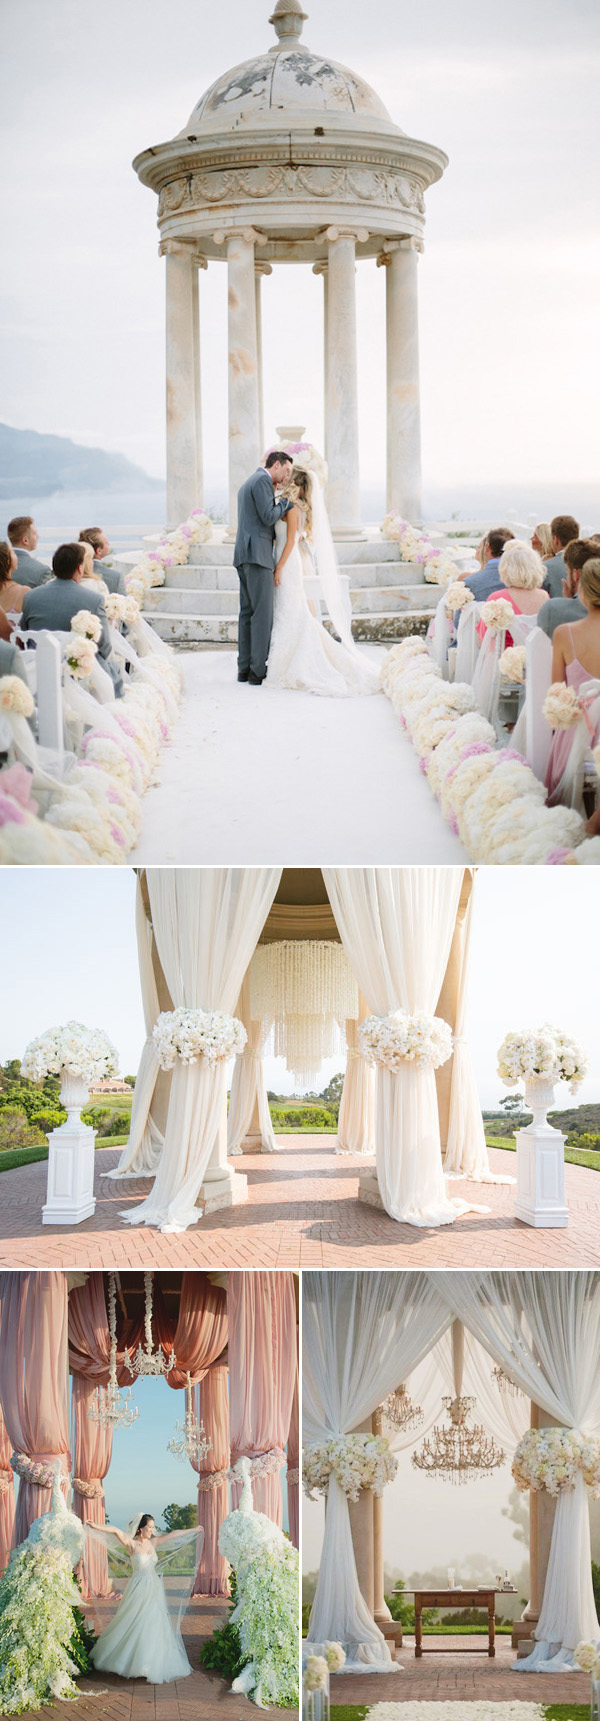 altar wedding decorations 30 eye catching wedding altars for wedding ceremony ideas 1271